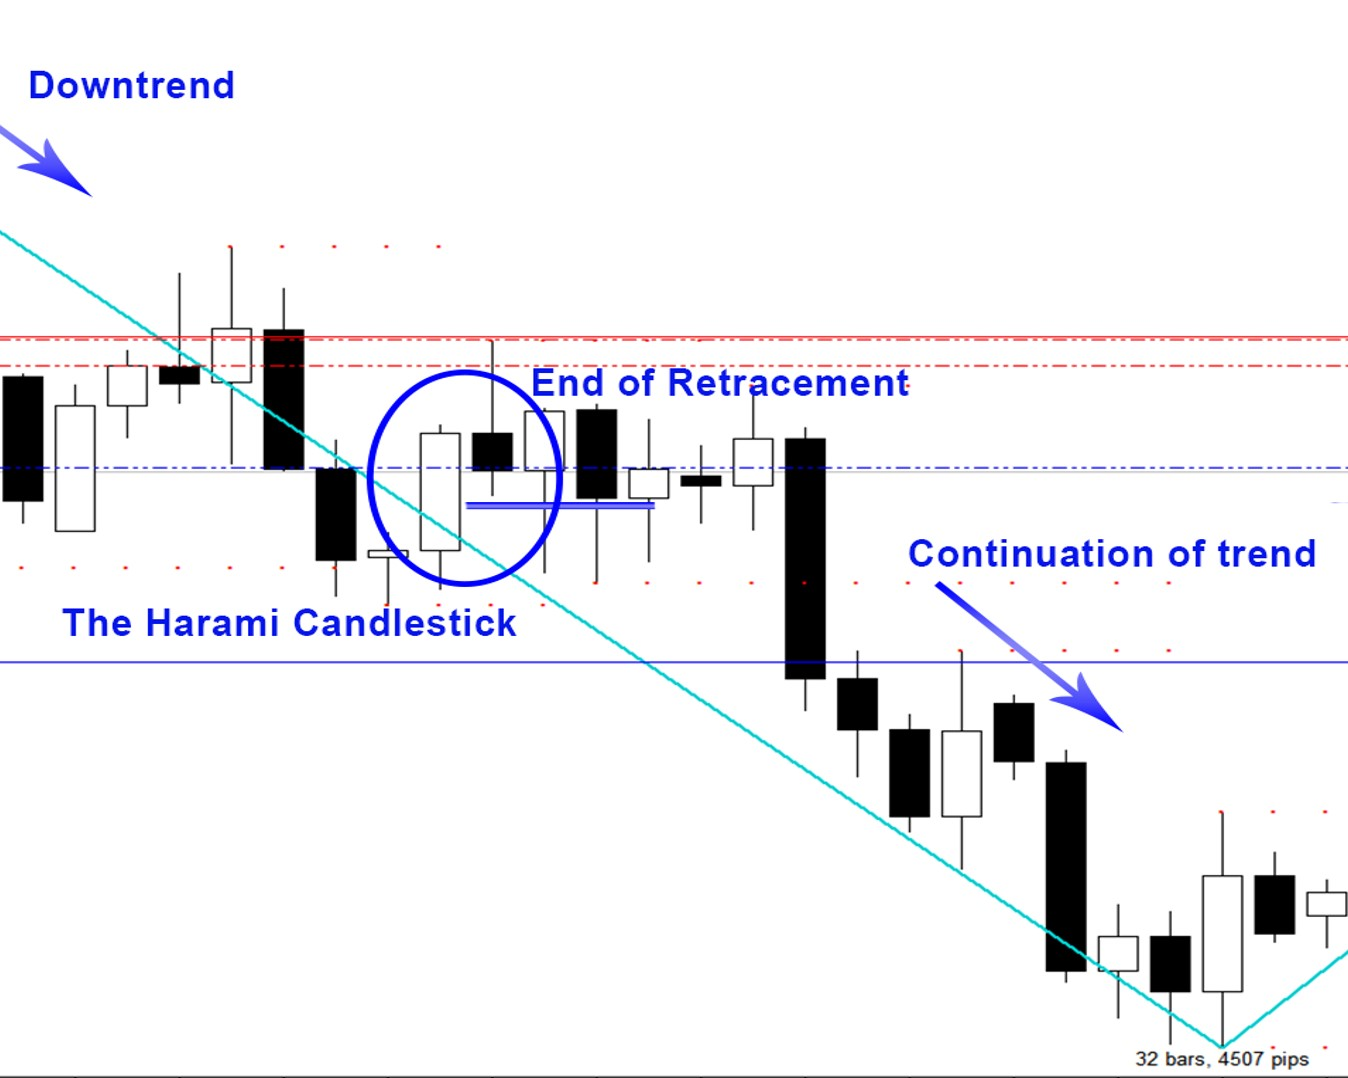 Candlestick Patterns - The Harami